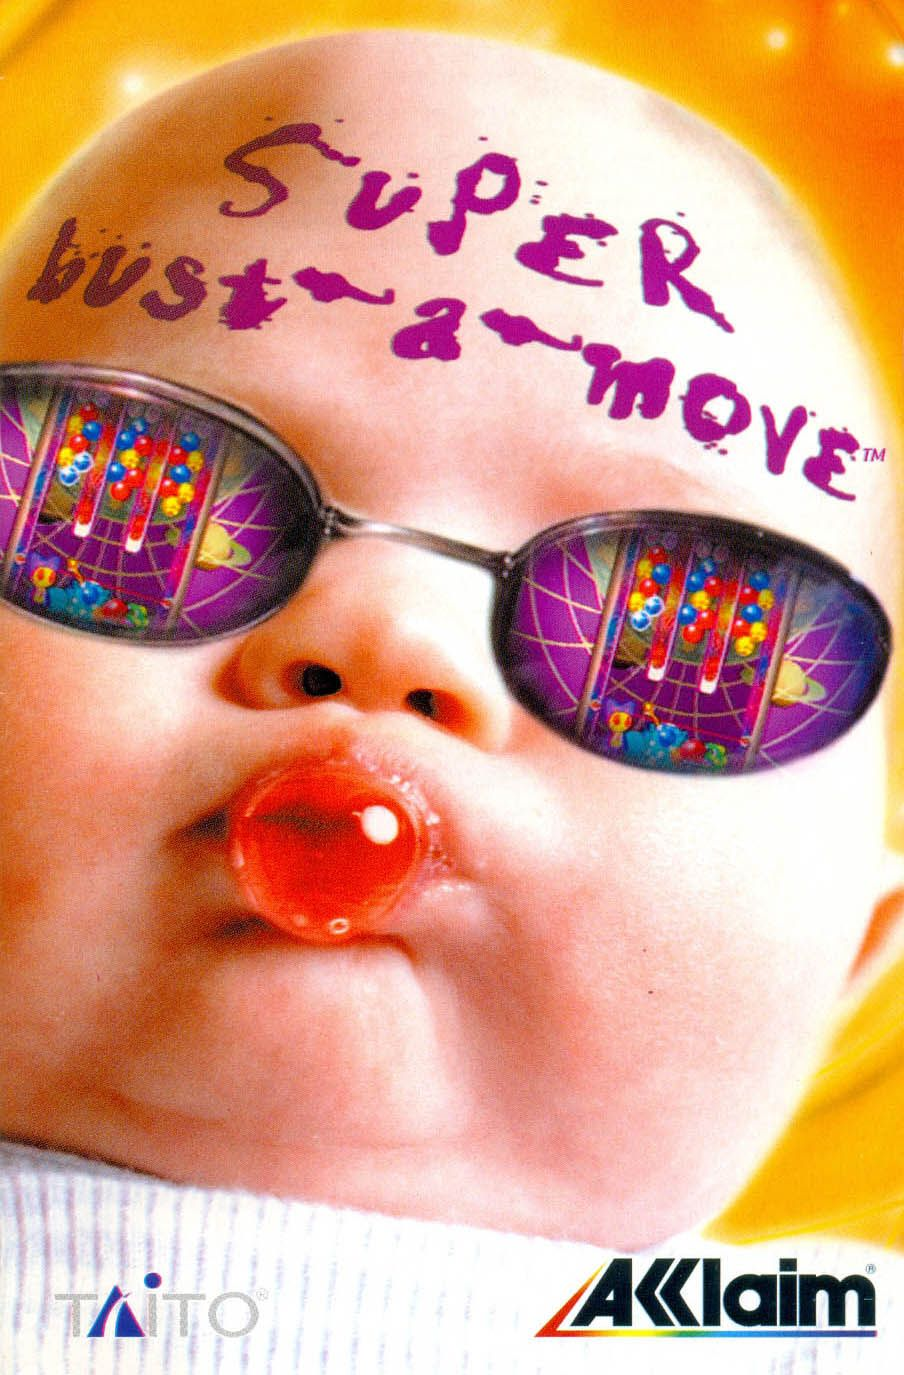 Super BustaMove Bust a move, Baby themes, Arcade console